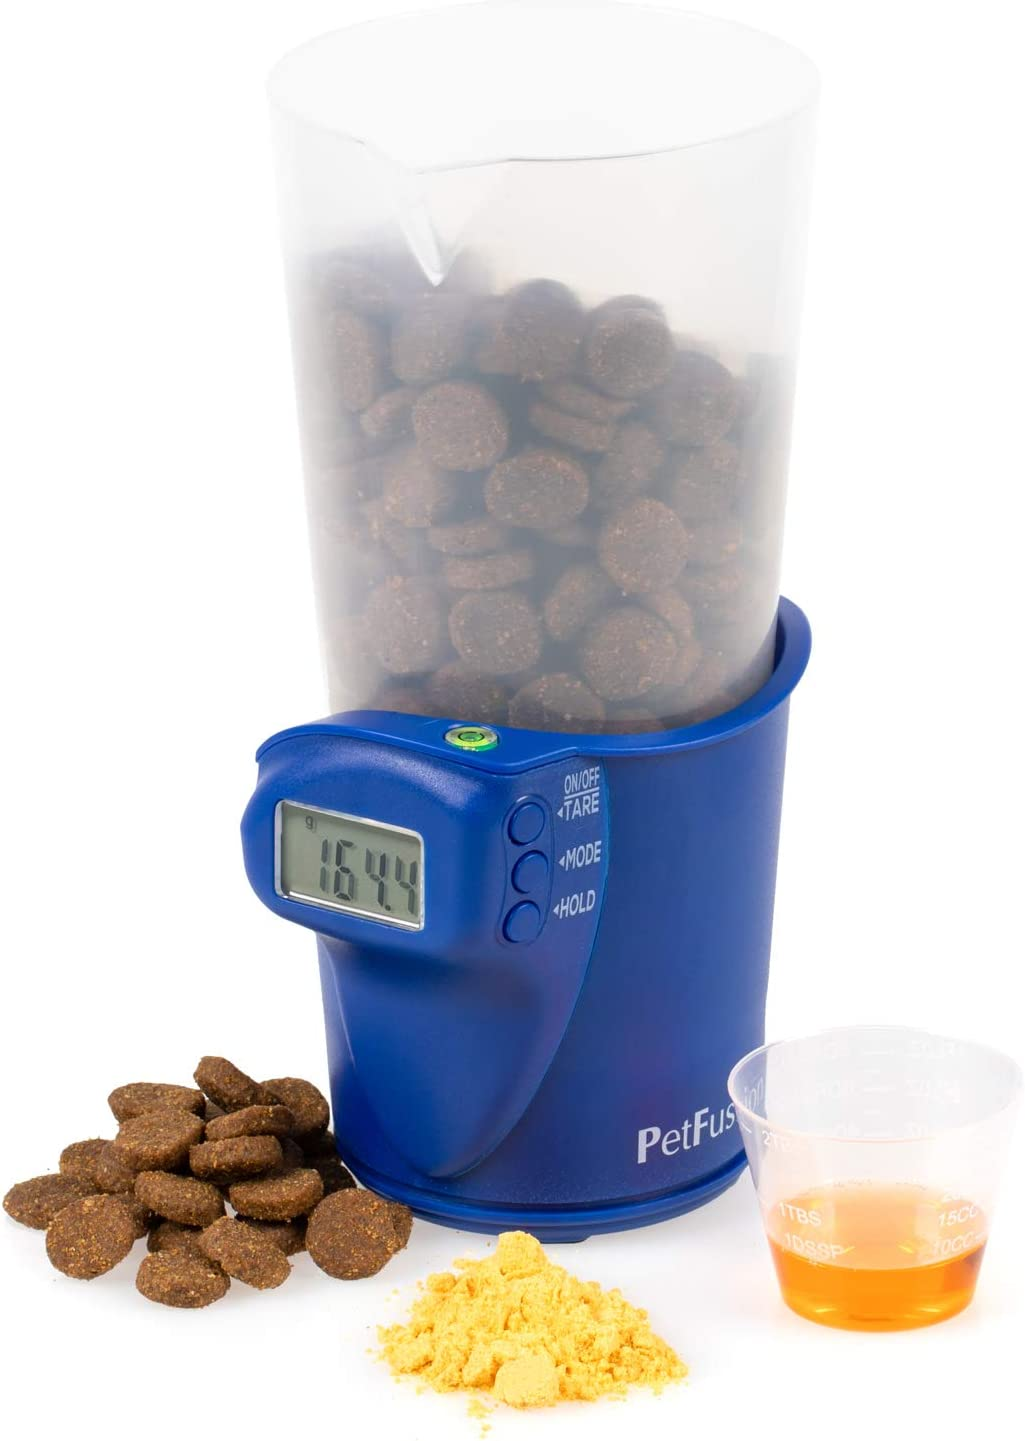 PetFusion Digital Food Scale & Scoop for Dry Dog Food & Cat Food (1, 2 Cup). [Precision Dog Food Measuring Cup for Better Nutrition, Weight Control, Savings]. 1 Year Warranty for Manufacturer Defects